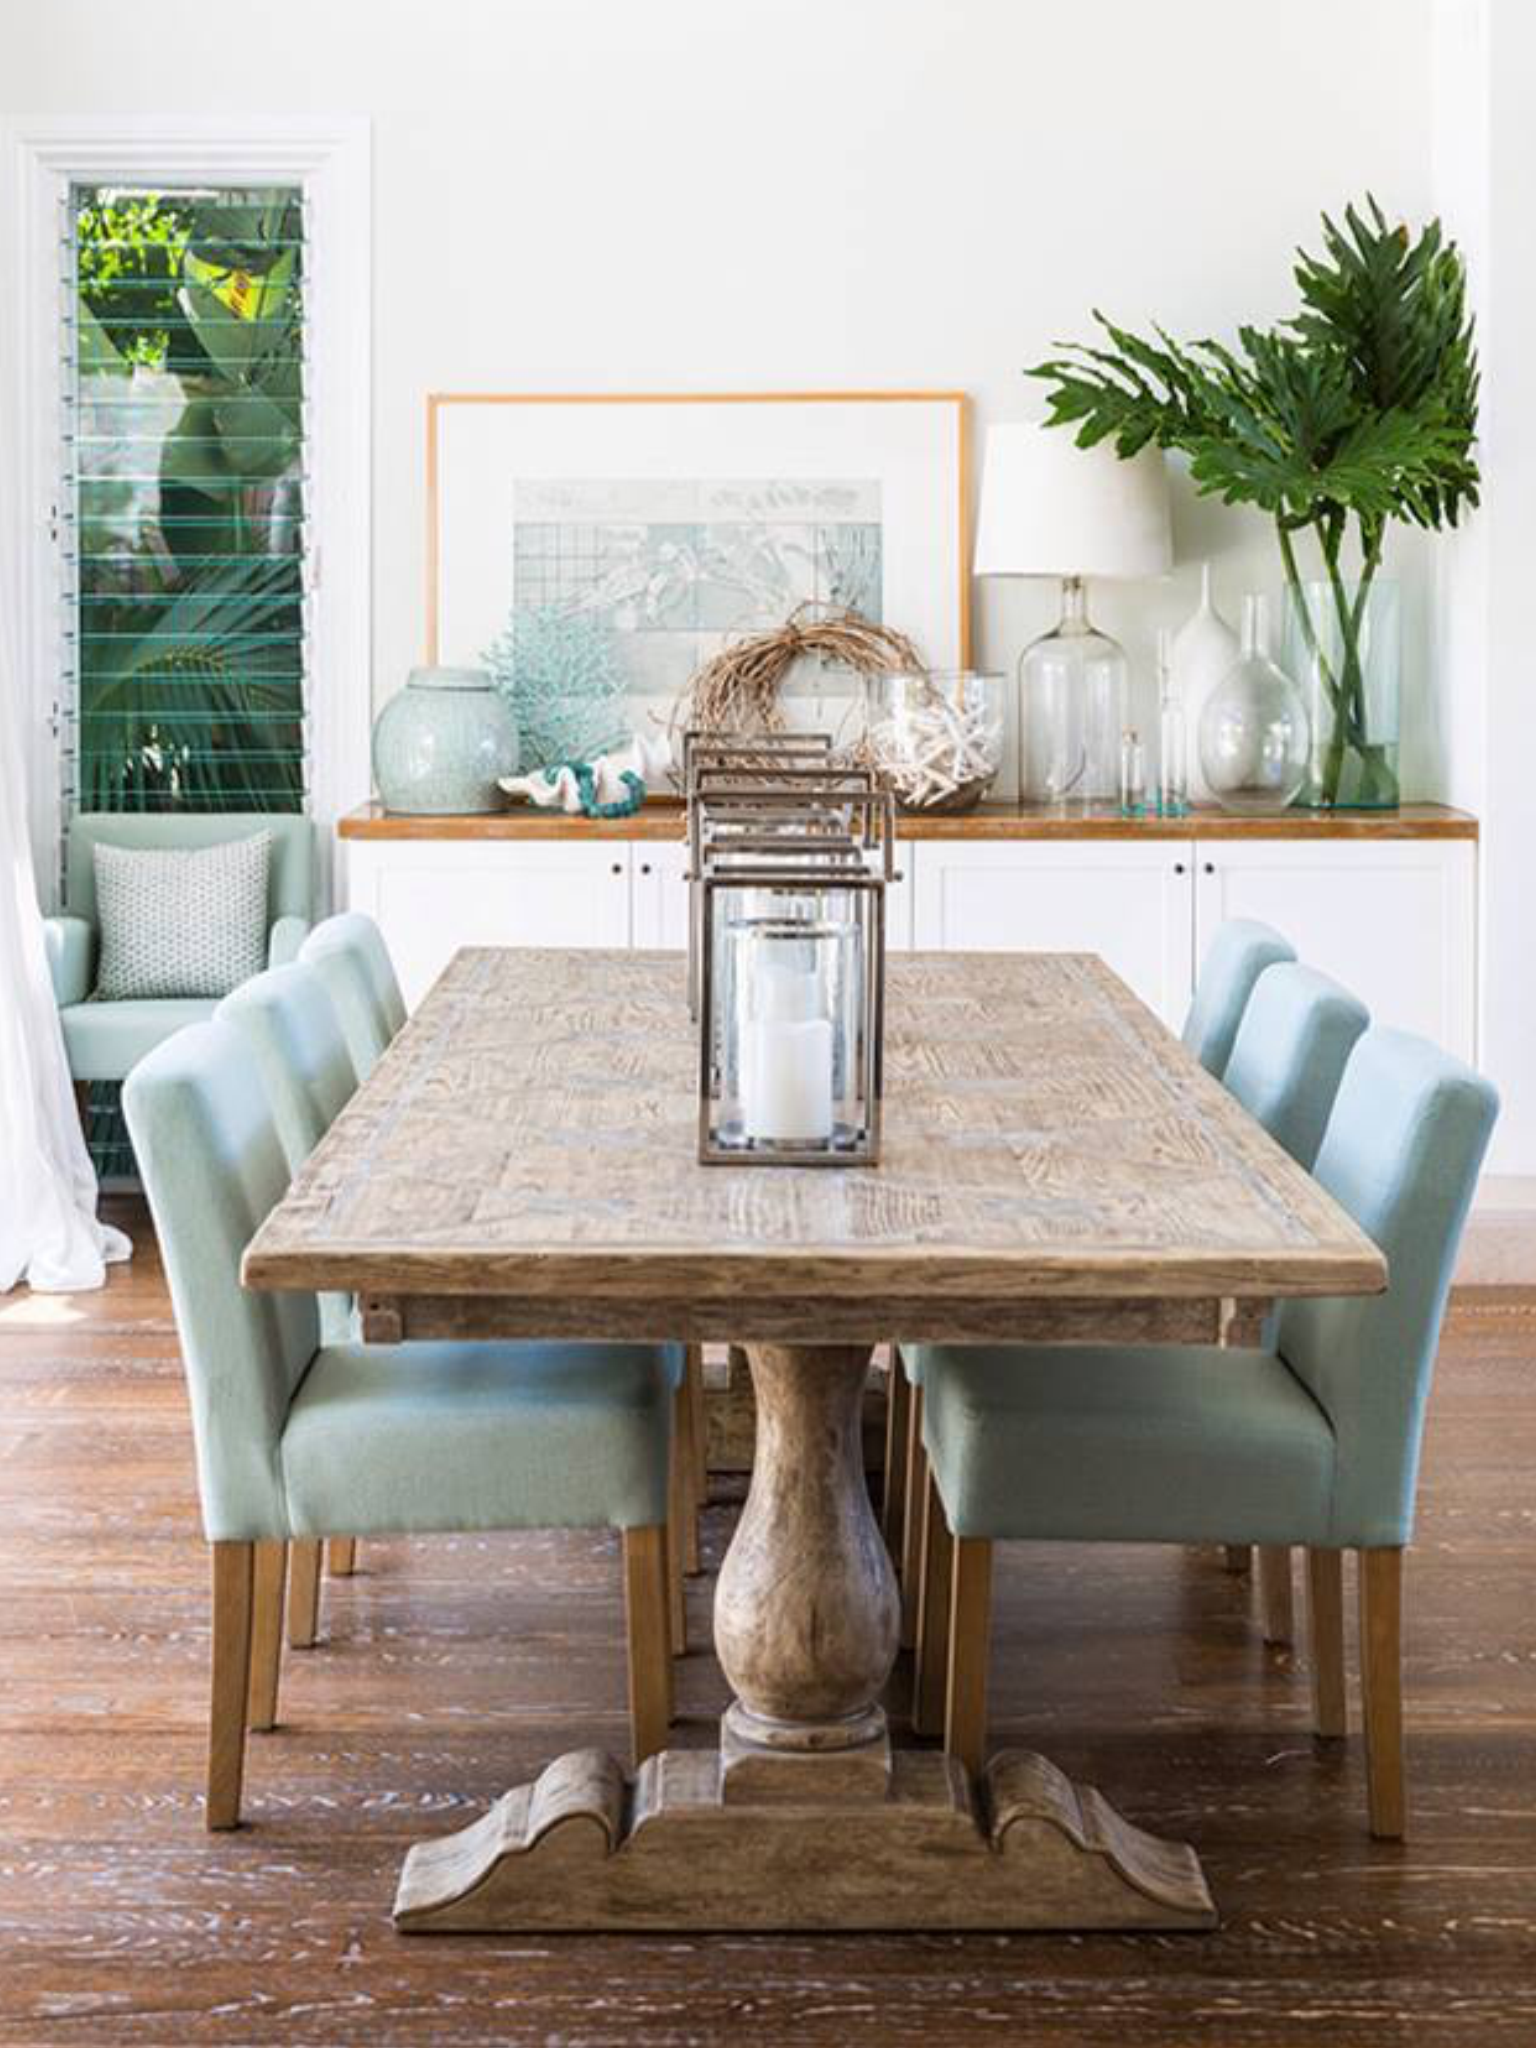 Coastal dining room | Coastal Style | Pinterest | Coastal, Room and ...